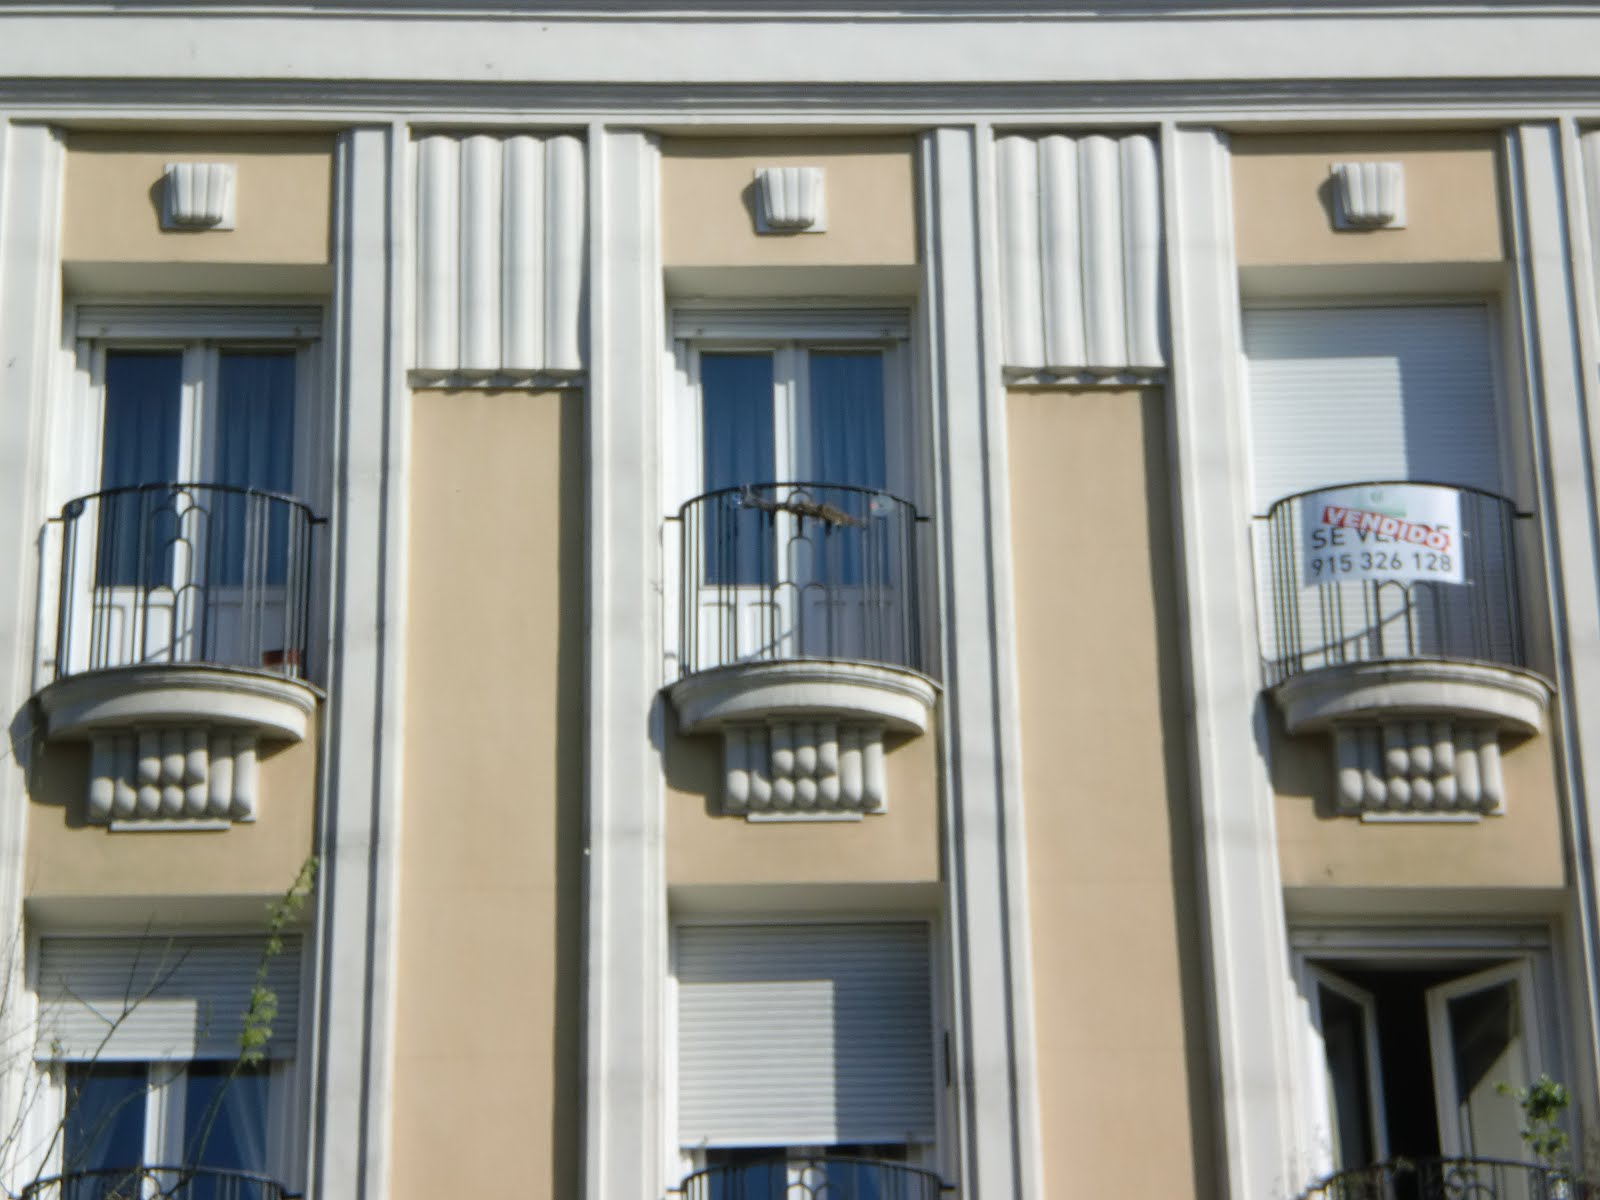 Madrid art dec oficina de banesto for Oficina banesto